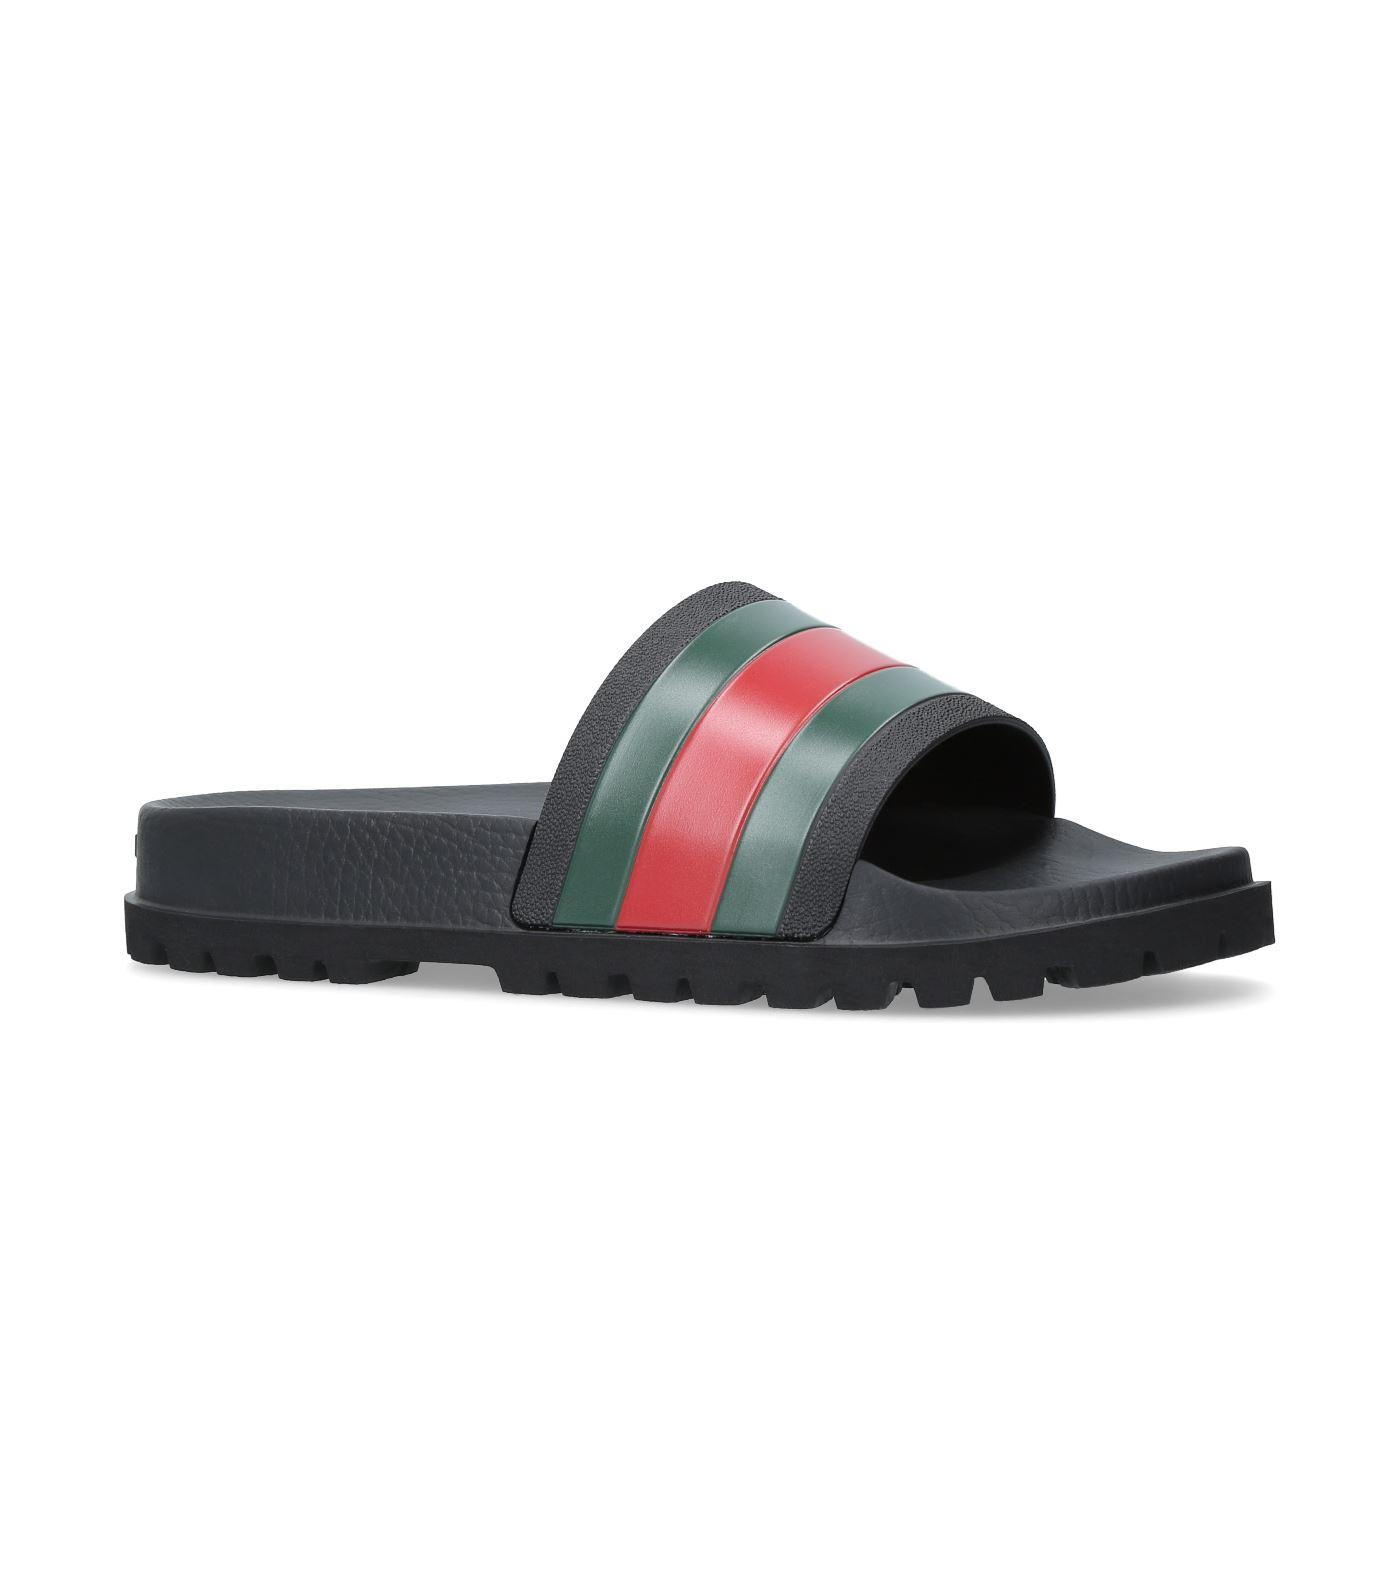 3323c7b7db1a04 Gucci Tricolor Stripe Sandals In Black In 1098 Black